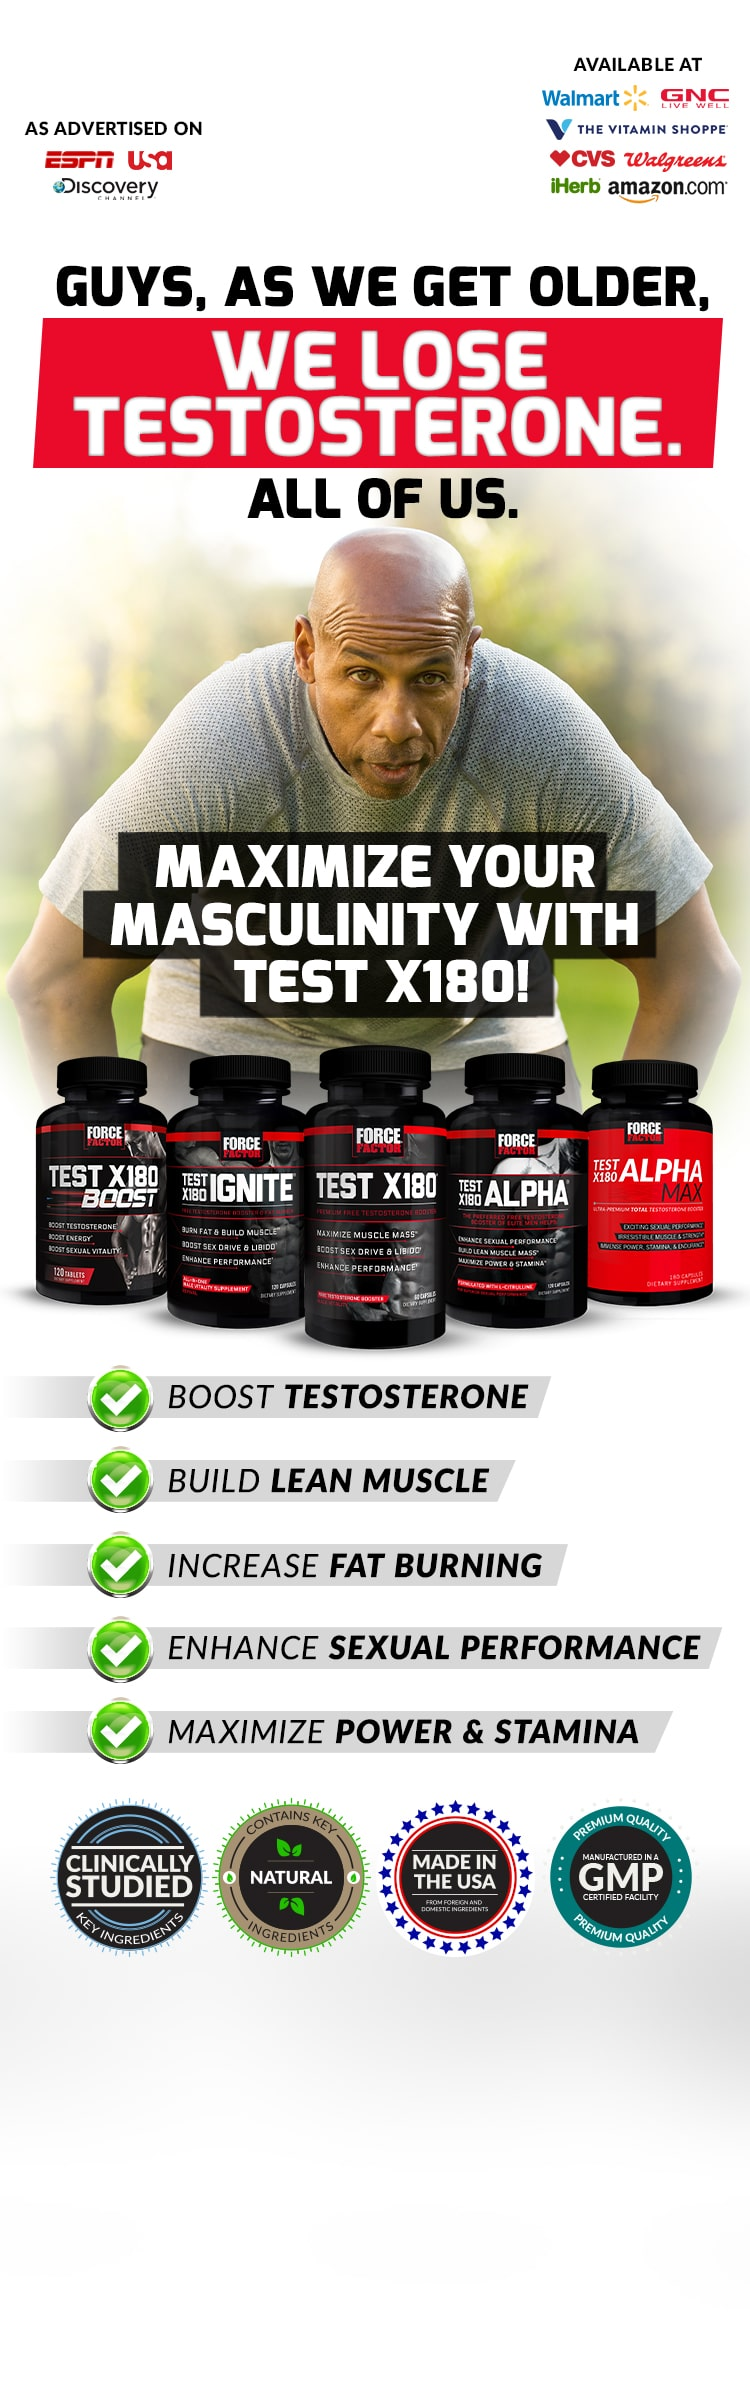 Guys, as we get older, we lose testosterone. All of us. Maximize your masculinity with Test X180! Test X180® Formulas Help You: BOOST TESTOSTERONE, BUILD LEAN MUSCLE, INCREASE FAT BURNING, ENHANCE SEXUAL PERFORMANCE, MAXIMIZE POWER & STAMINA.